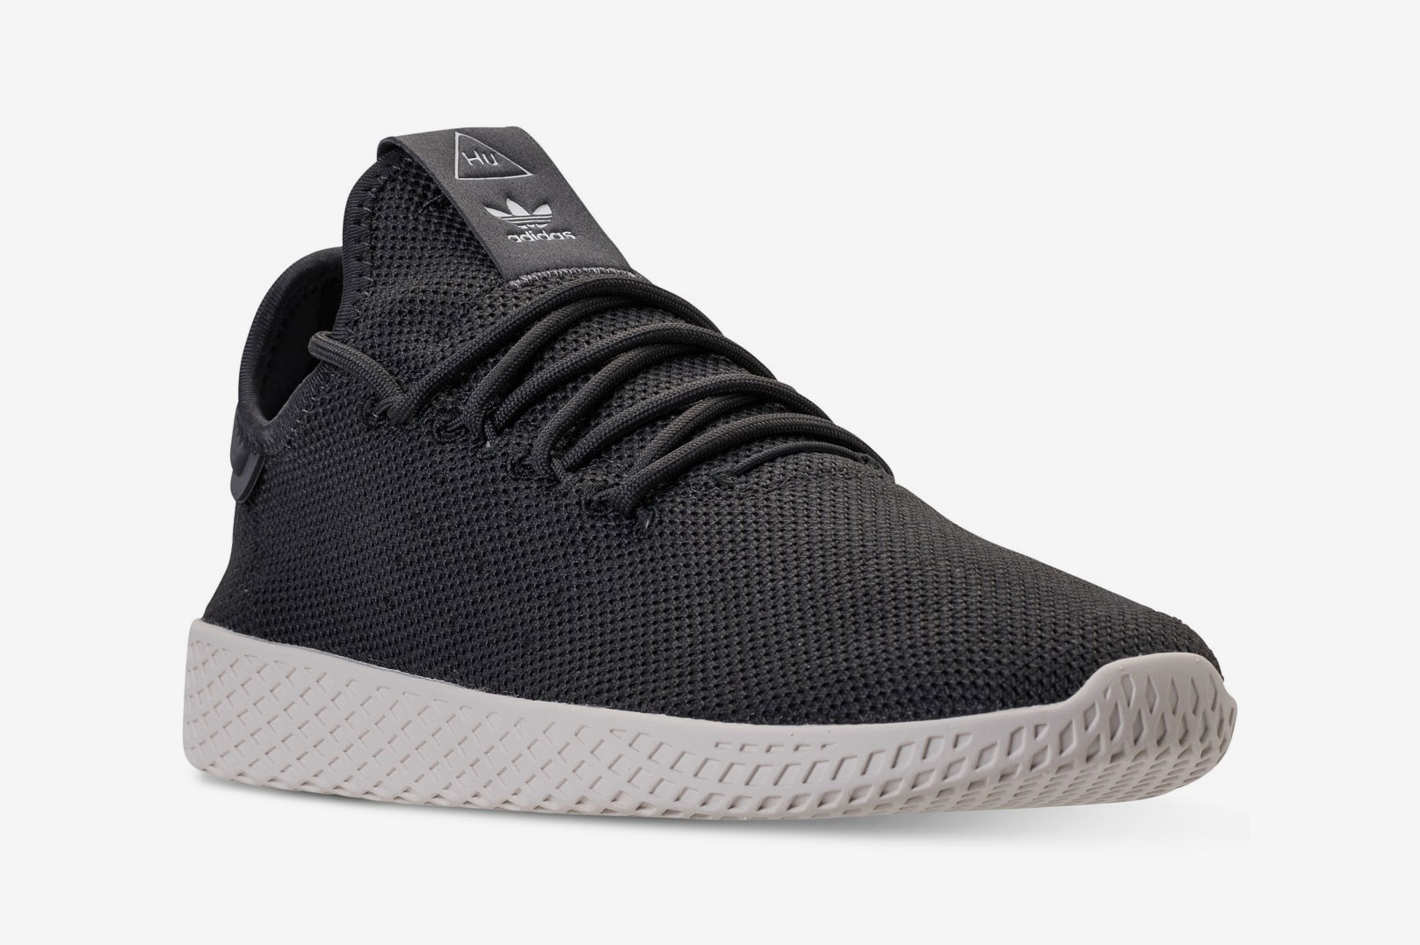 Adidas Men's Originals Pharrell Williams Tennis HU Casual Sneakers